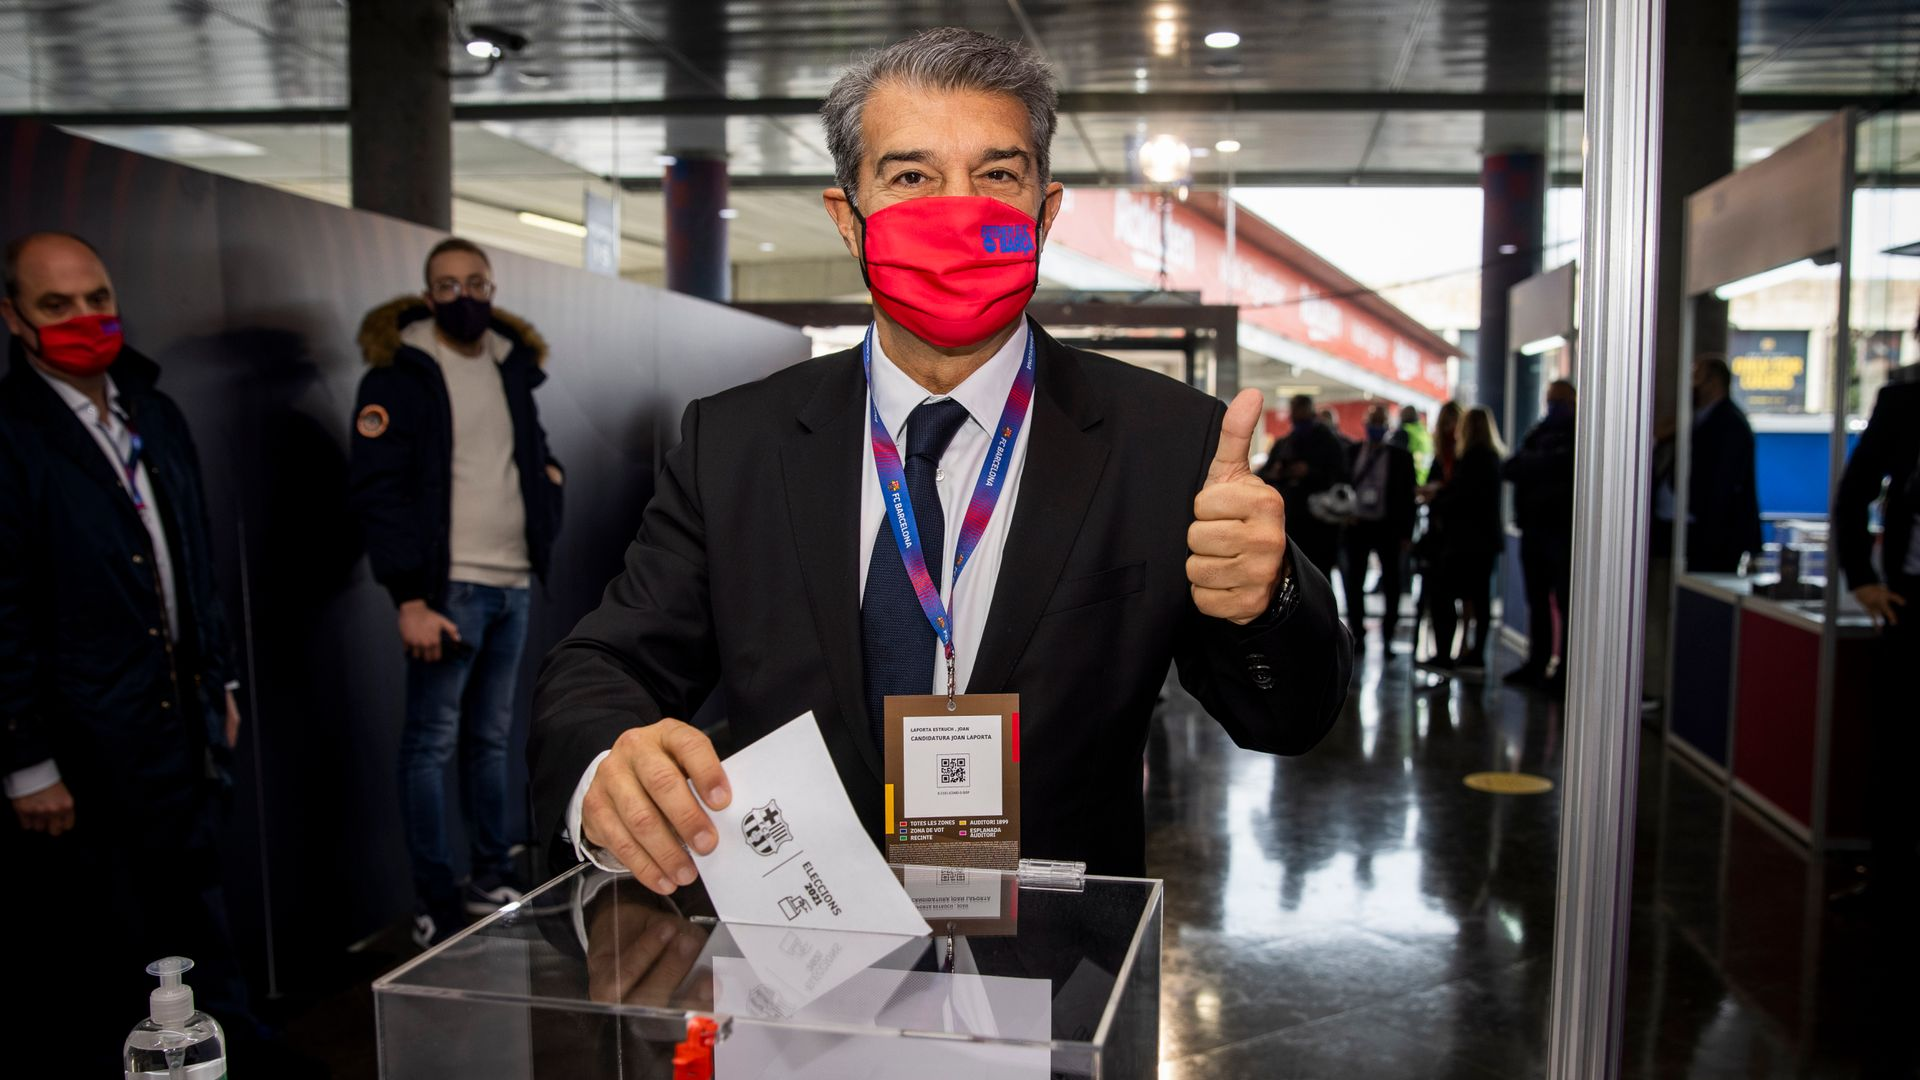 Laporta wins Barcelona presidential election - sky sports